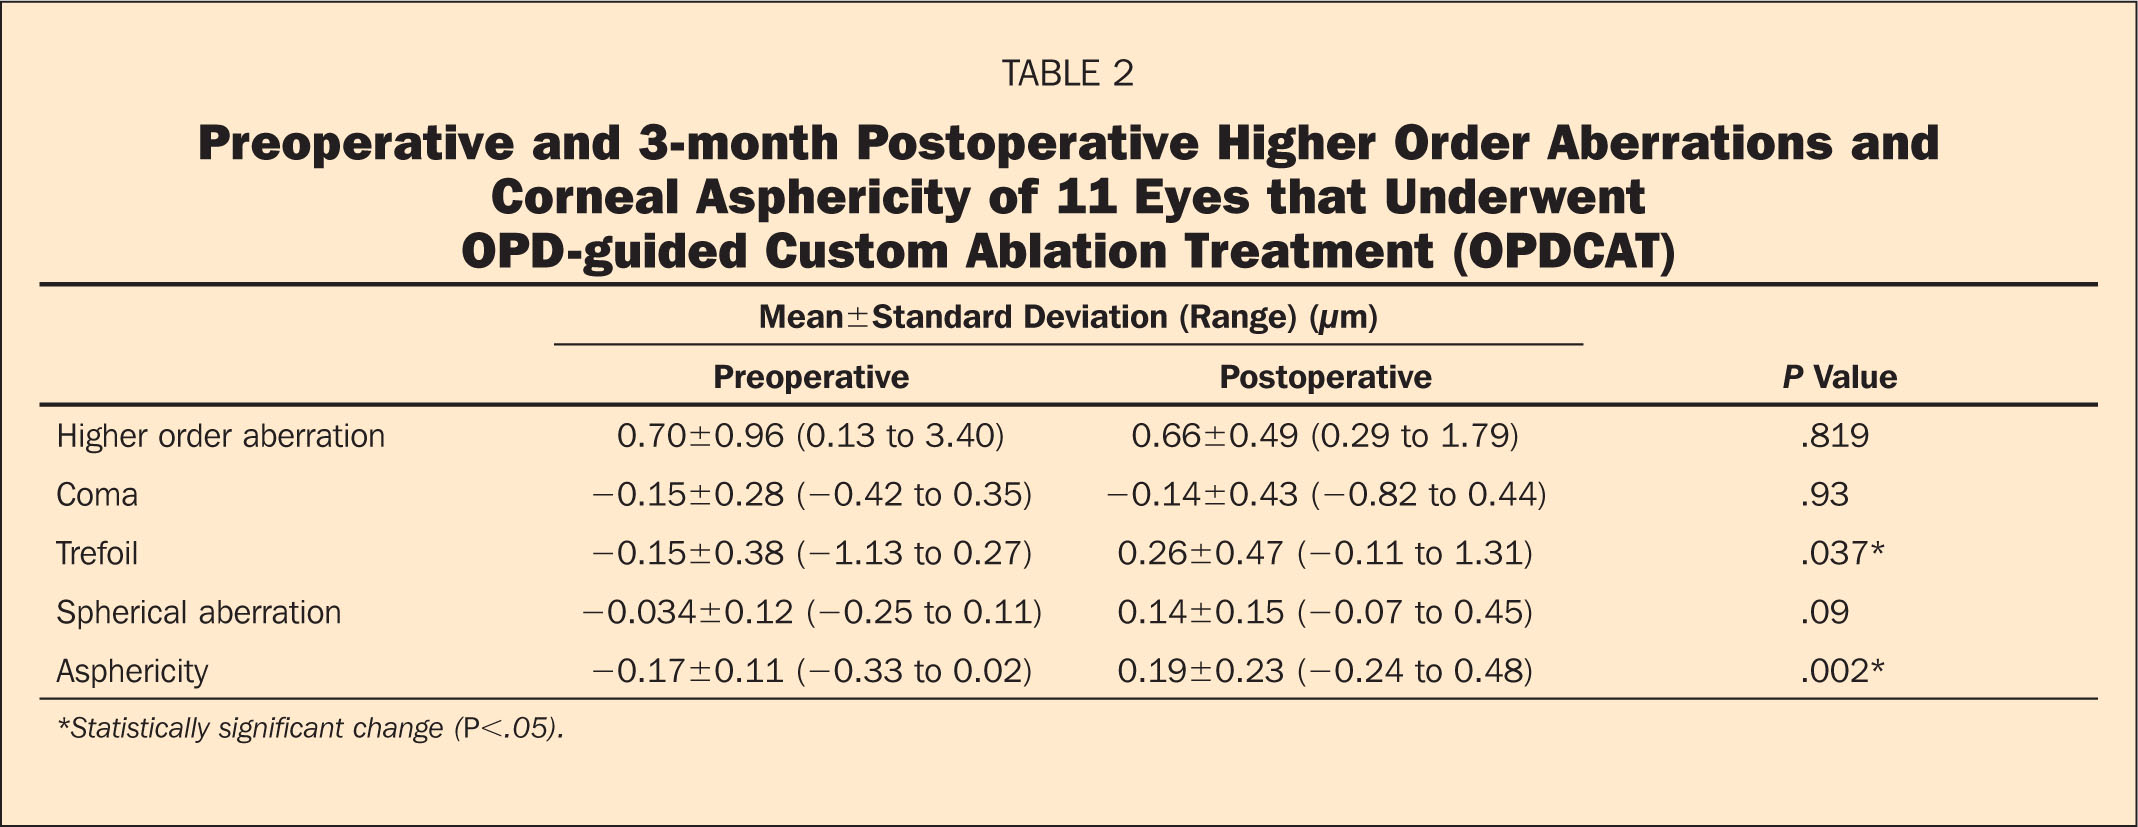 Preoperative and 3-Month Postoperative Higher Order Aberrations and Corneal Asphericity of 11 Eyes that Underwent OPD-Guided Custom Ablation Treatment (OPDCAT)